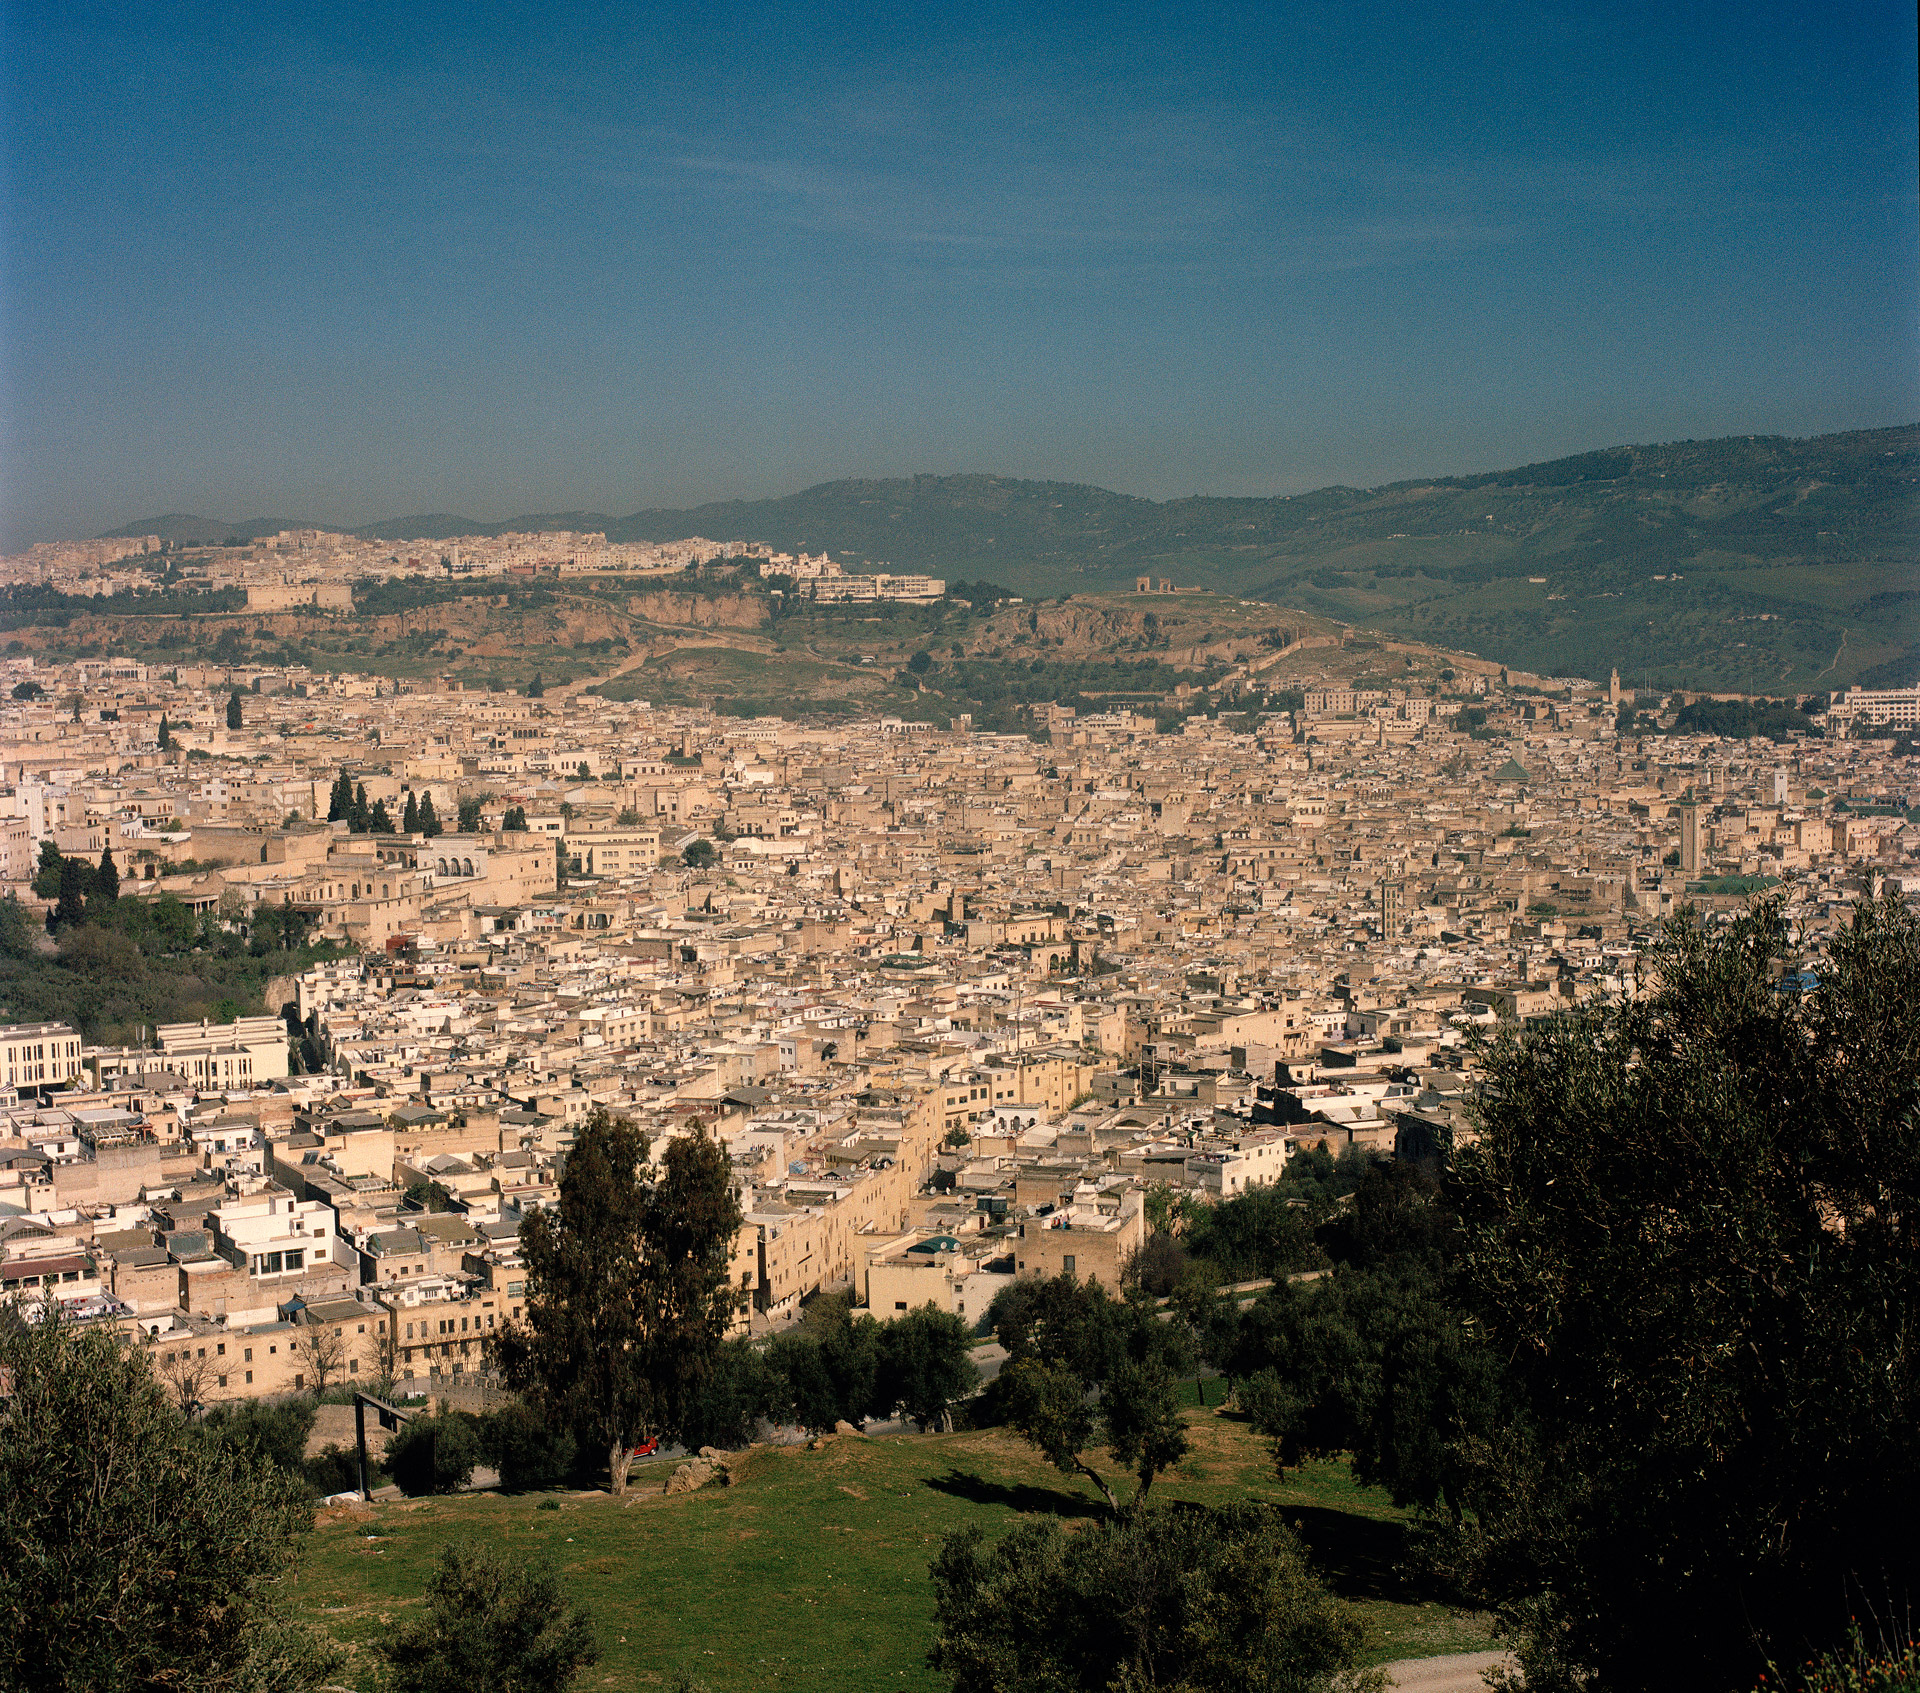 View over the old Medina quarters of Fez in Morocco